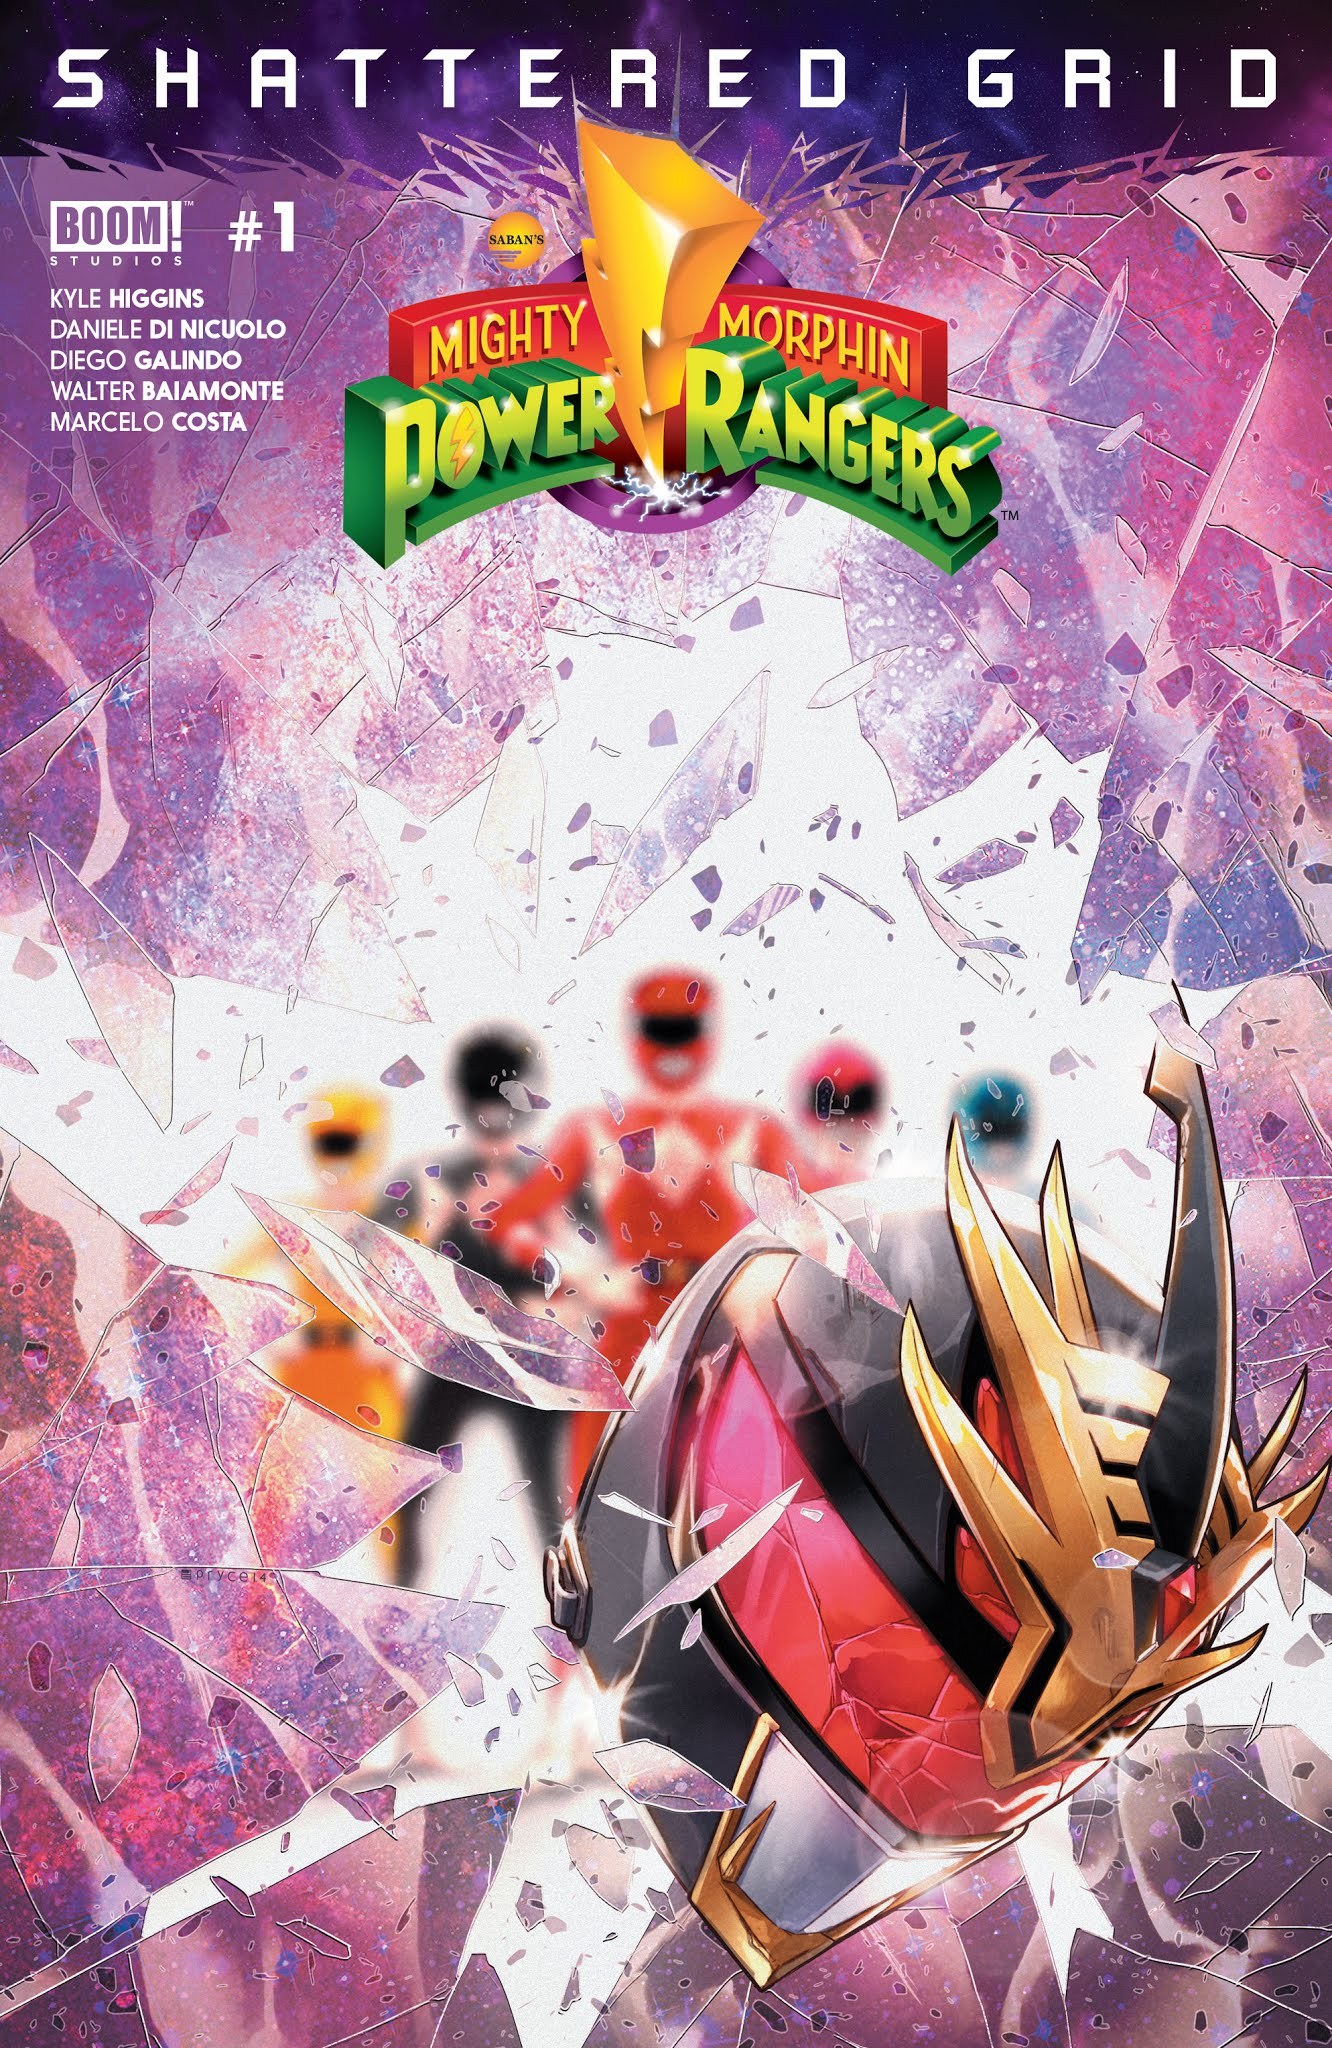 Mighty Morphin Power Rangers: Shattered Grid Full Page 1